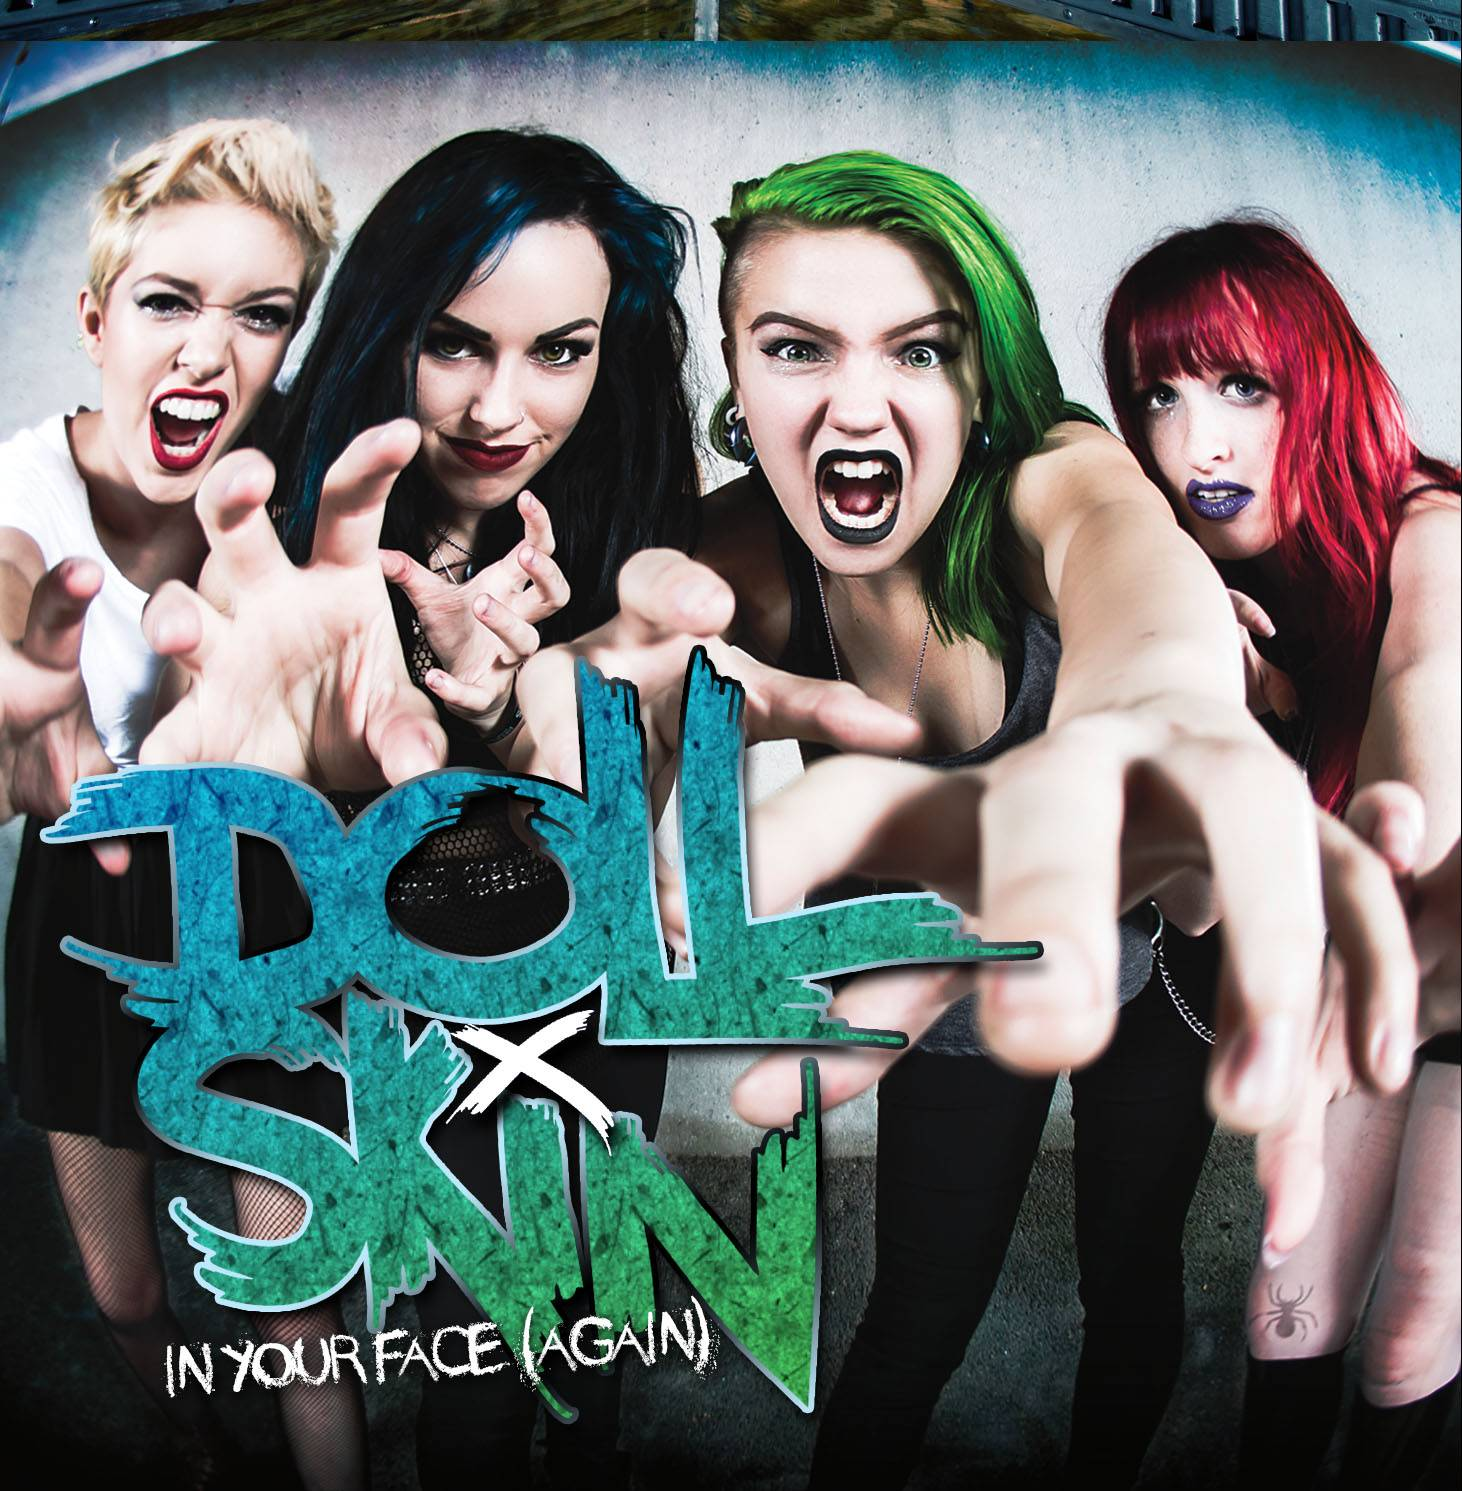 Doll Skin In Your Face (Again)